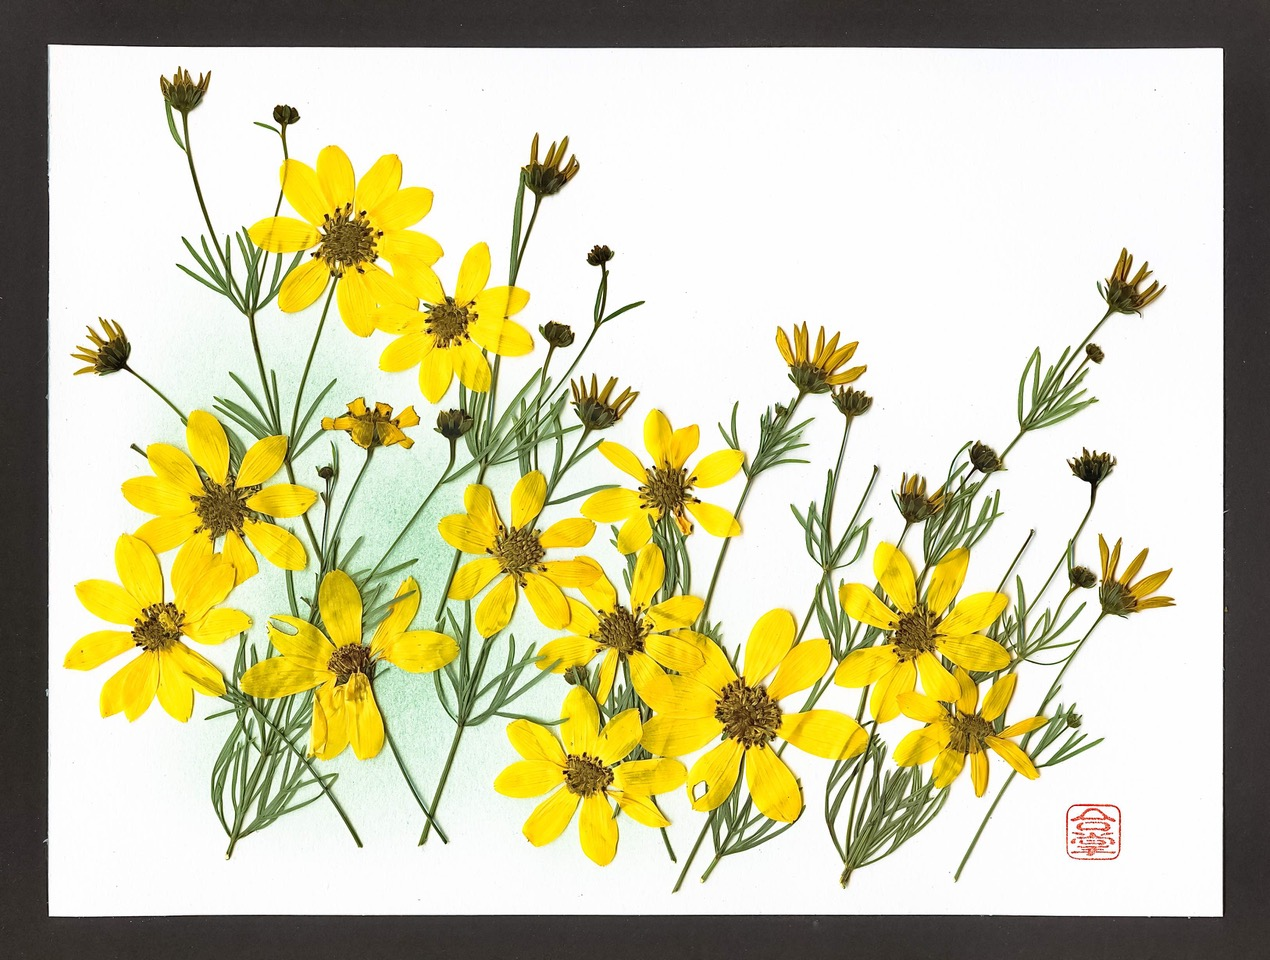 summer yellow flowers with green bgd 2018-5-1.jpeg